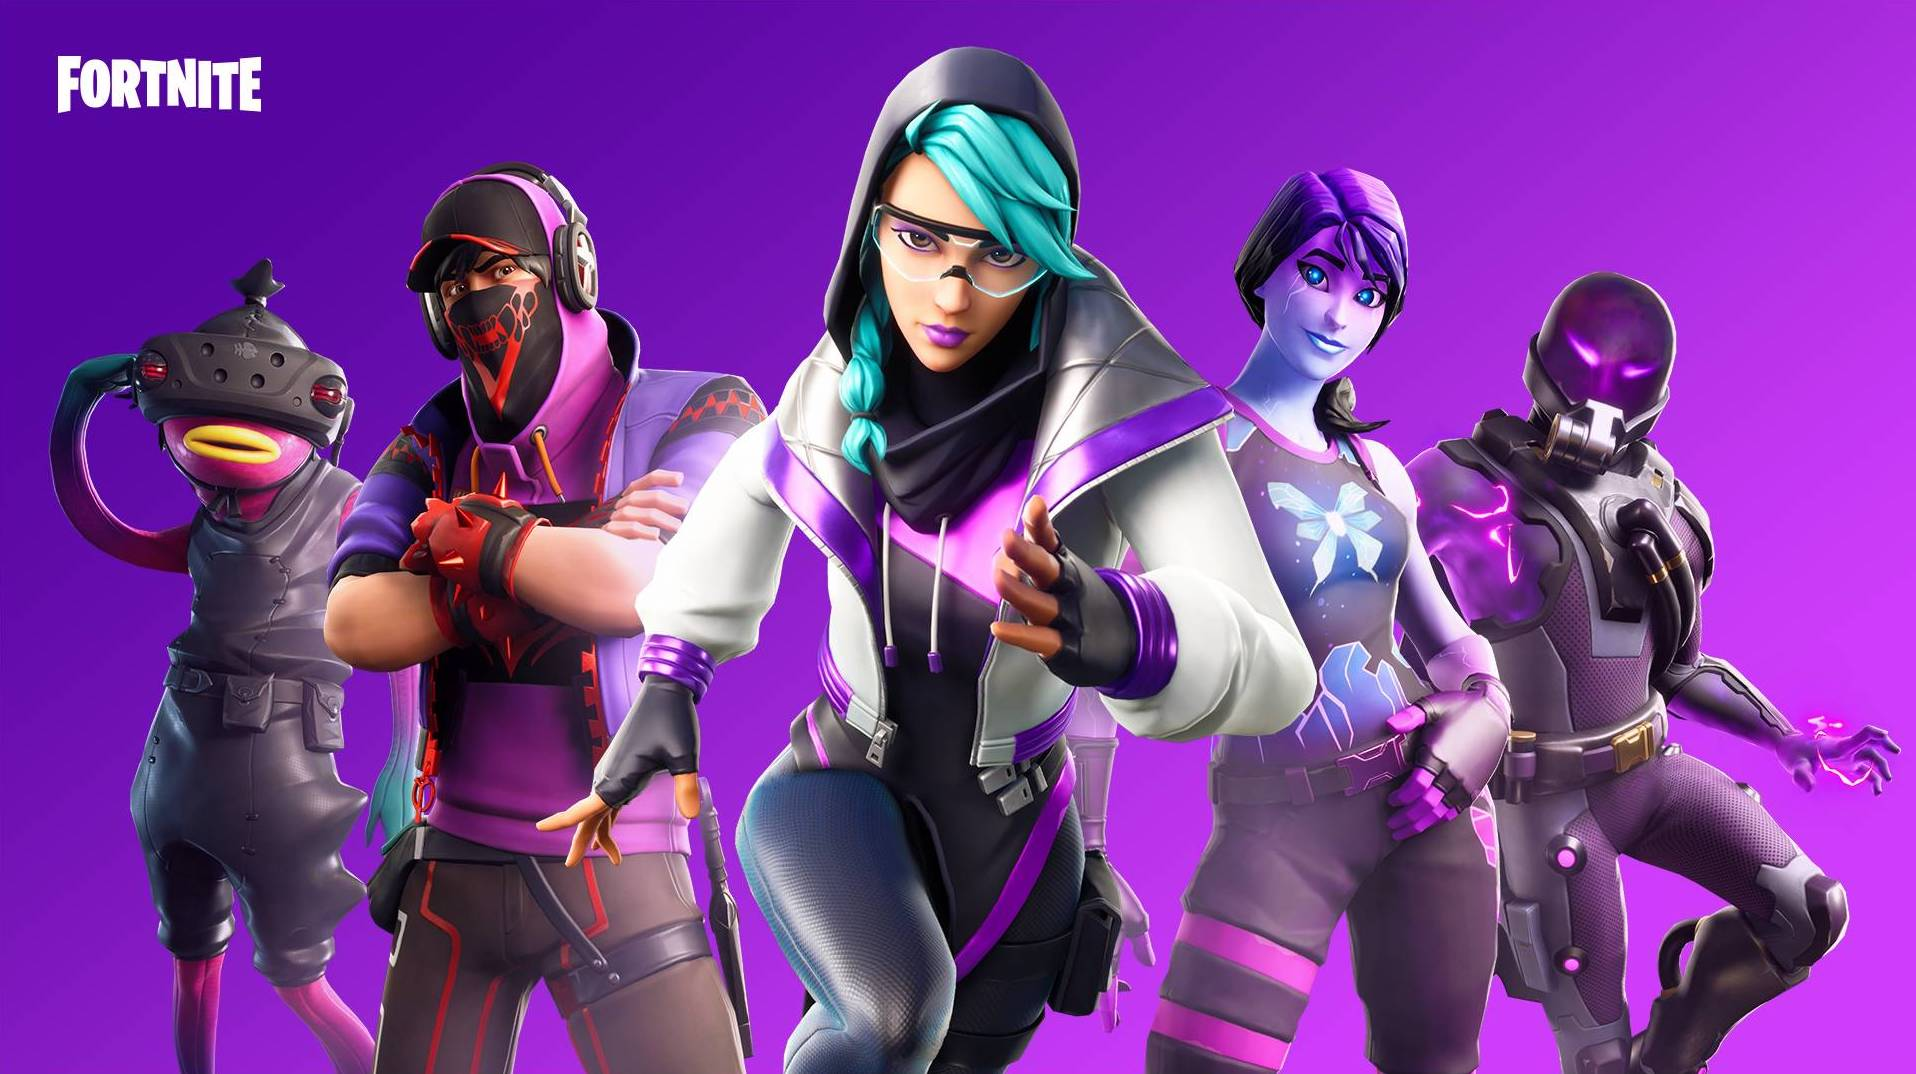 Epic Games Continues To Attempt To Weaponize Their Fans With Upcoming #FreeFortnite Cup